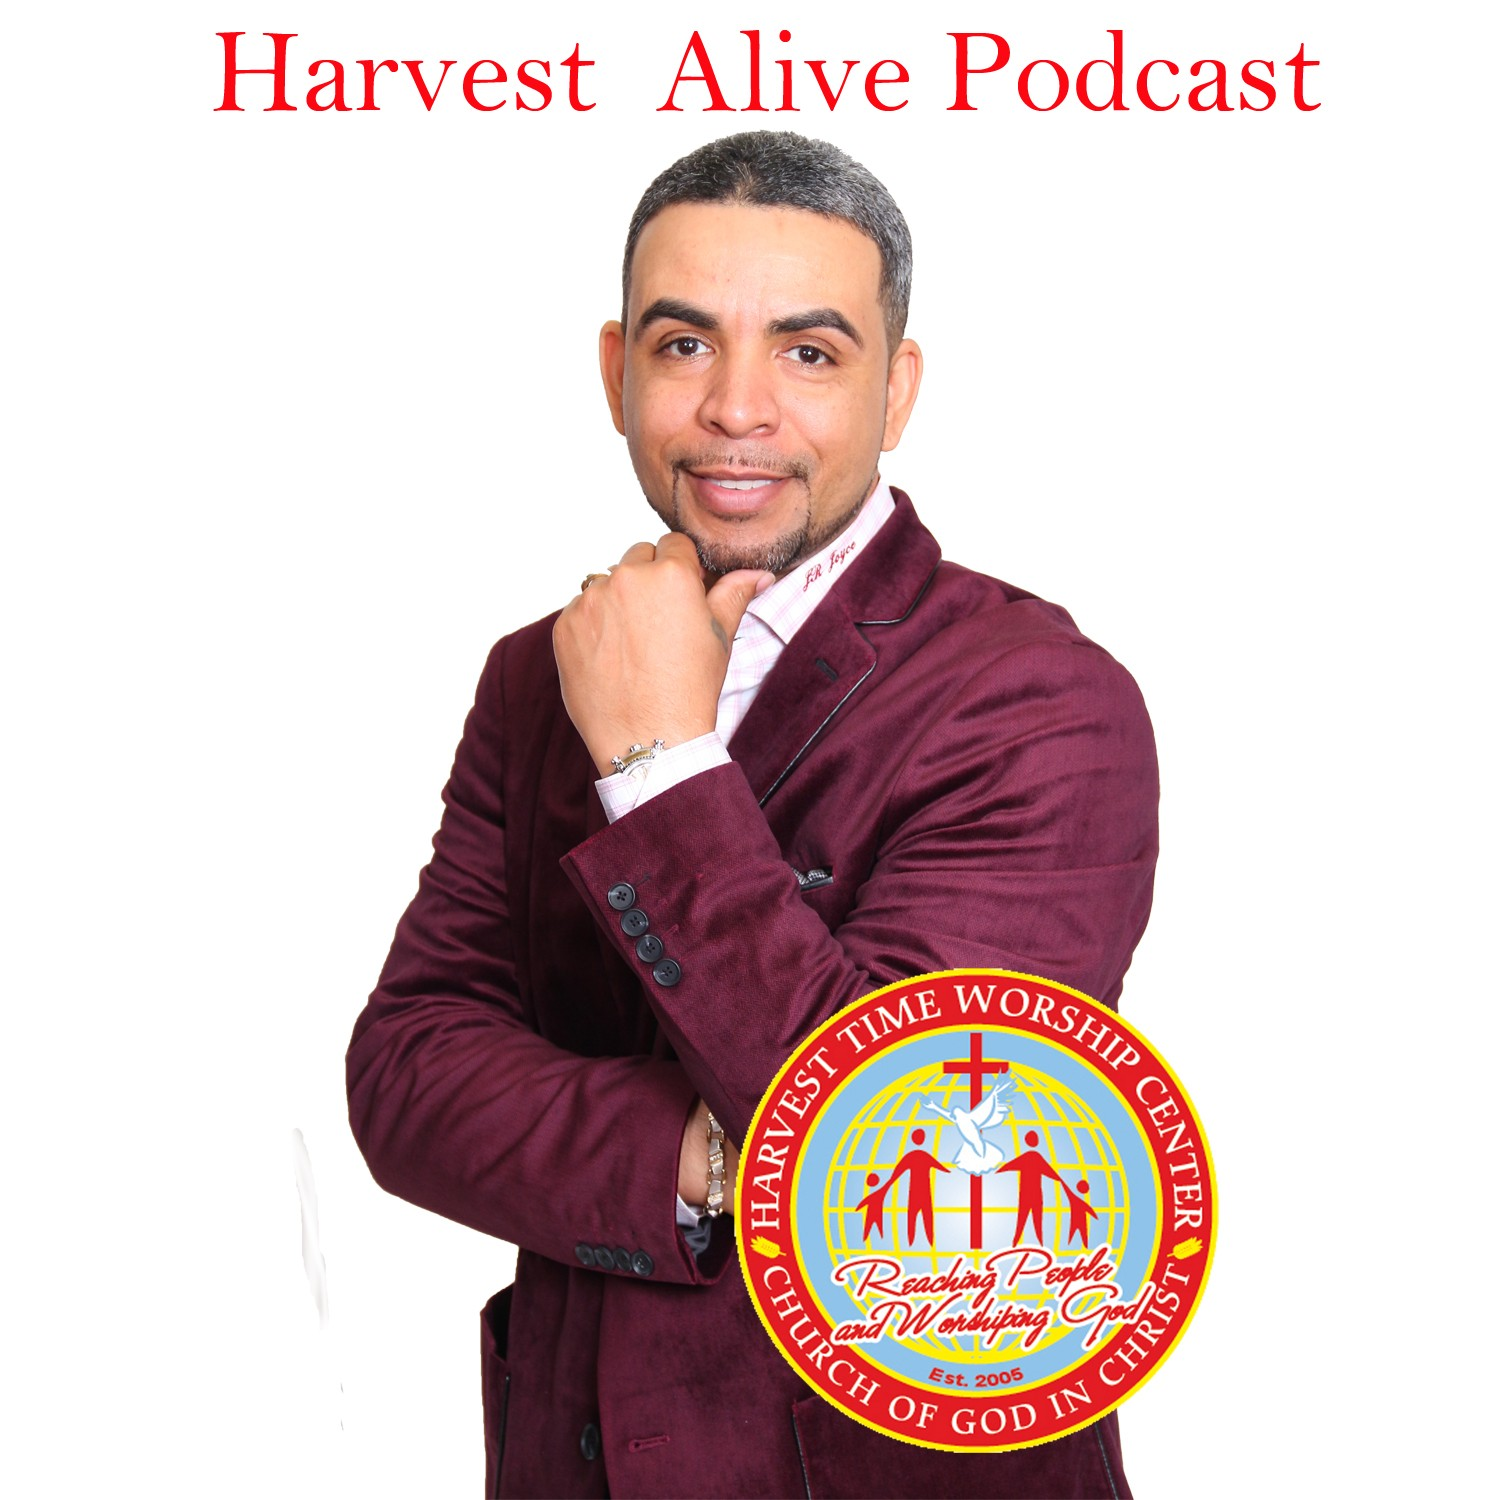 Harvest Time Worship Center's Podcast